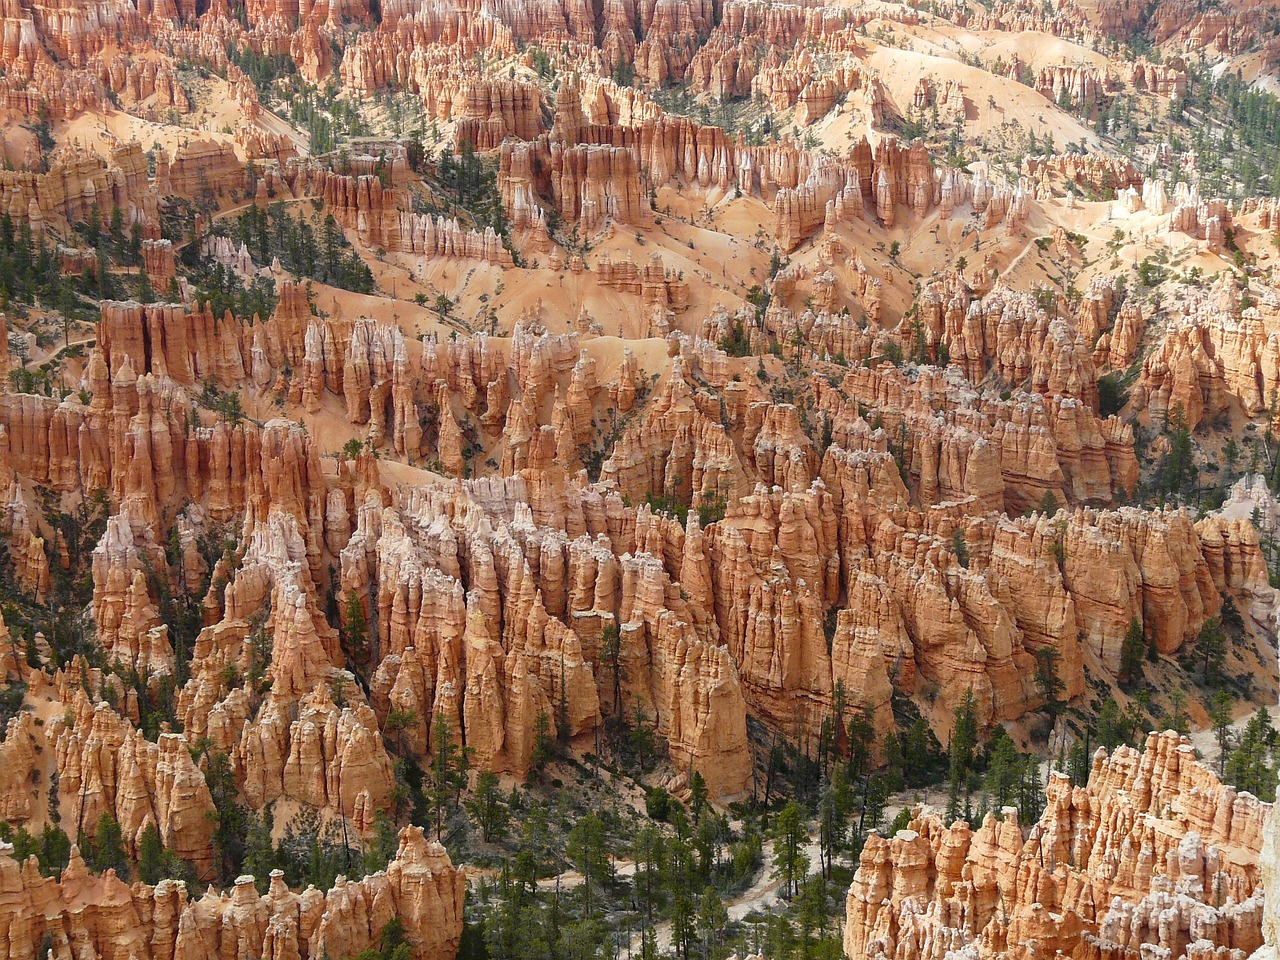 bryce canyon,bryce canyon national park,utah,united states,usa,gorge,sand stone,pyramid rock,hoodoo,paunsaugunt plateau,paunsaugunt,amphitheater,erosion,erosion forms,landscape,nature,red,national park,rock,free pictures, free photos, free images, royalty free, free illustrations, public domain